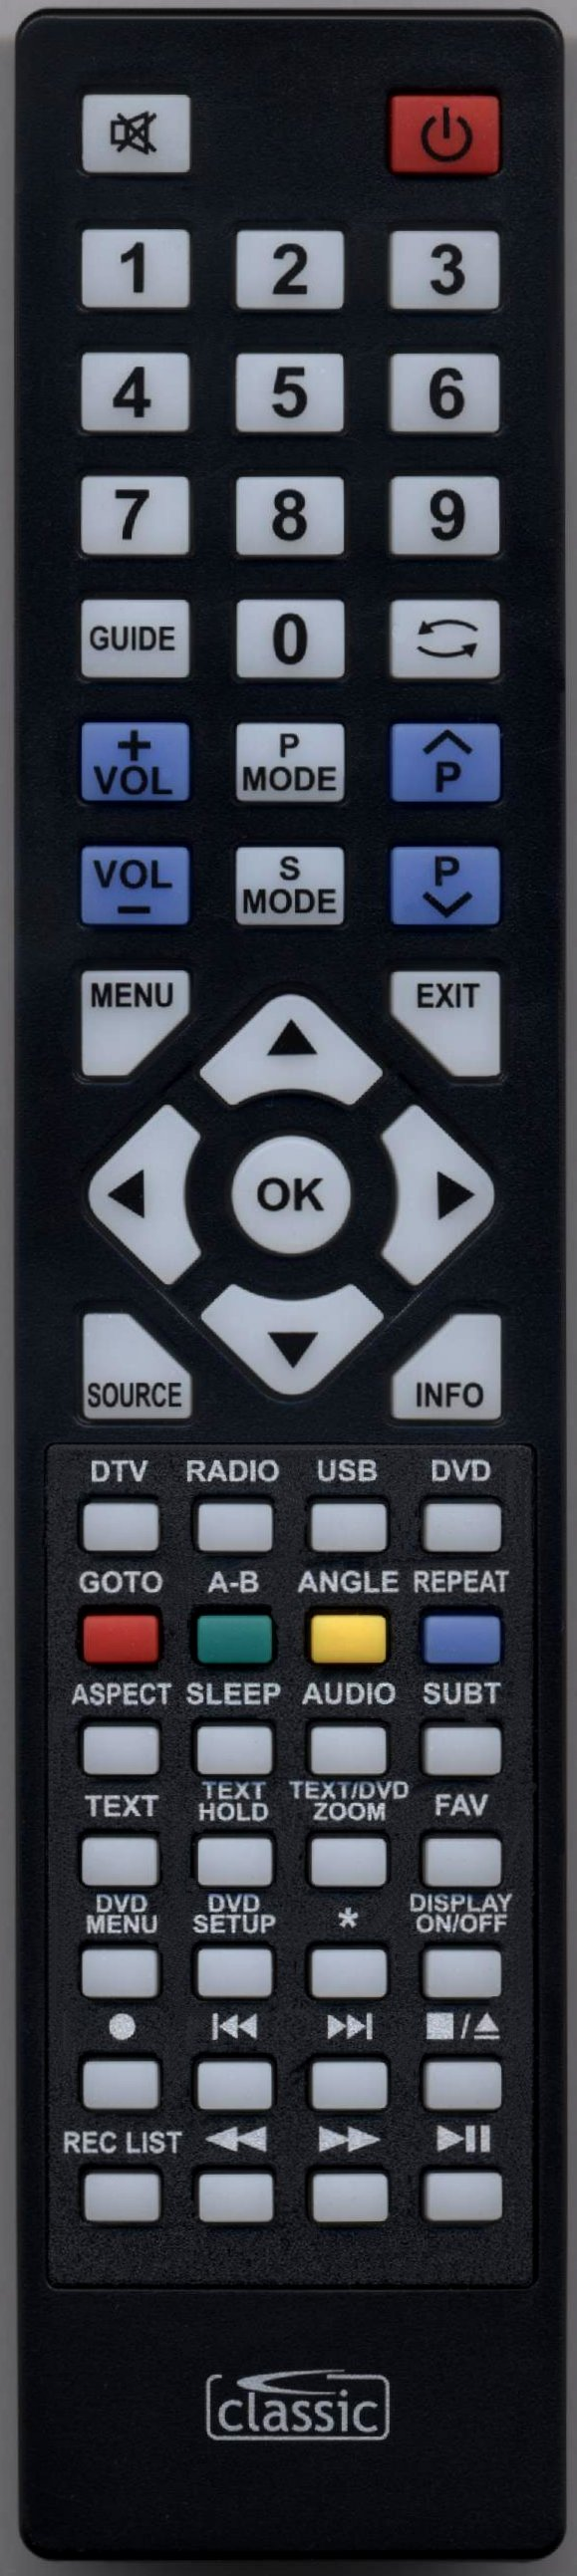 BLAUPUNKT 32/148Z-GB-11B-GDU-UK Remote Control Alternative